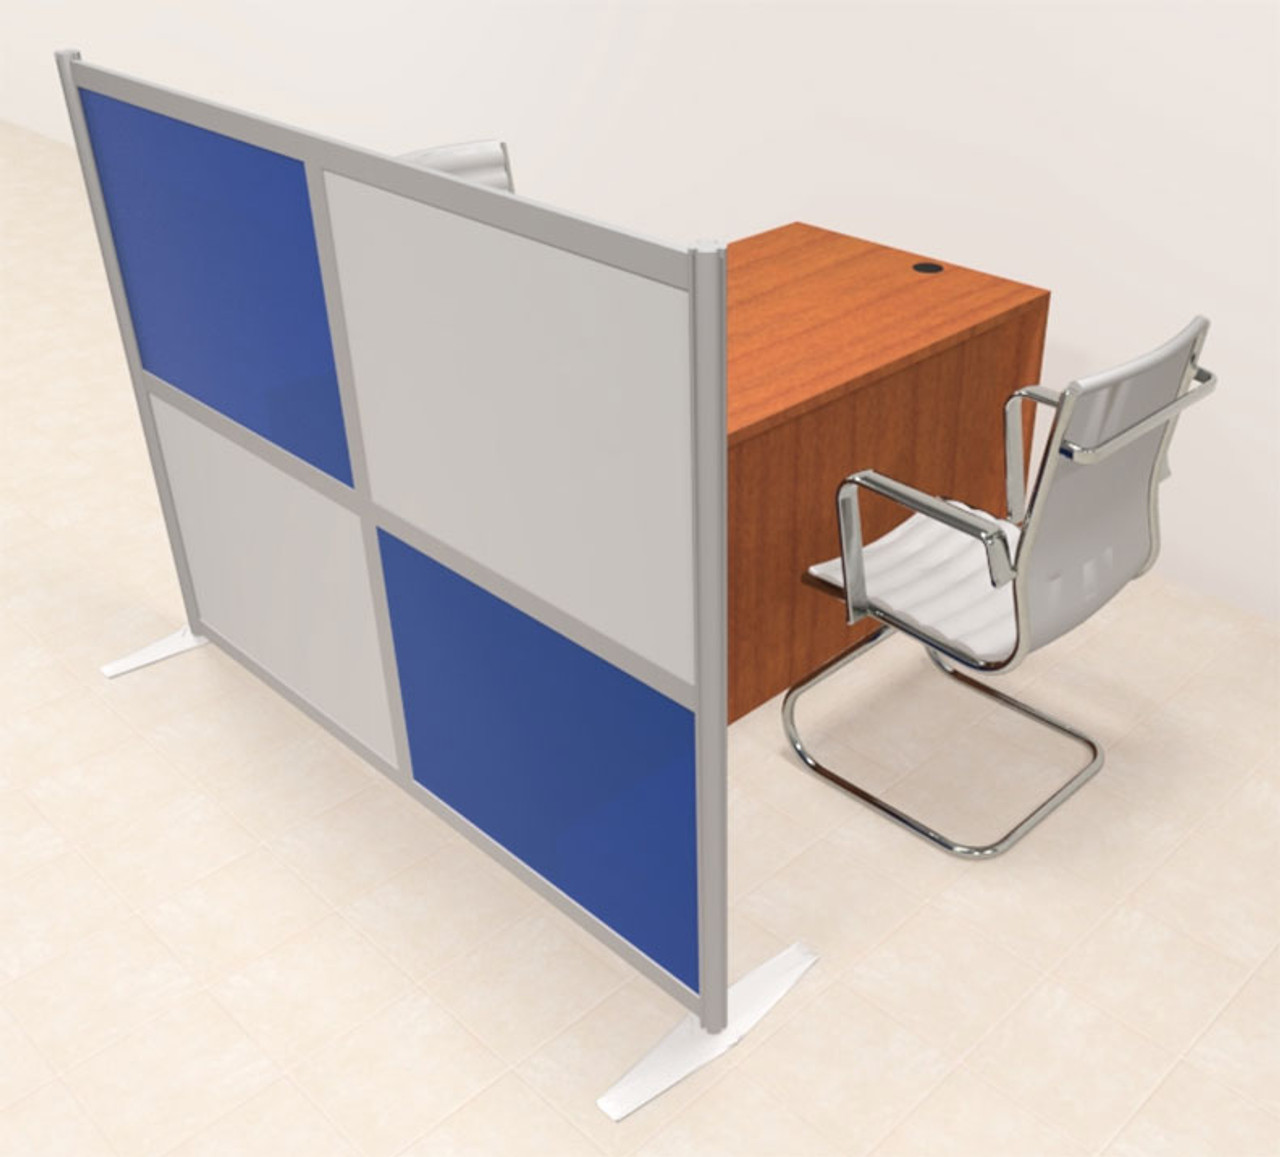 One Person Workstation w/Acrylic Aluminum Privacy Panel, #OT-SUL-HPB49